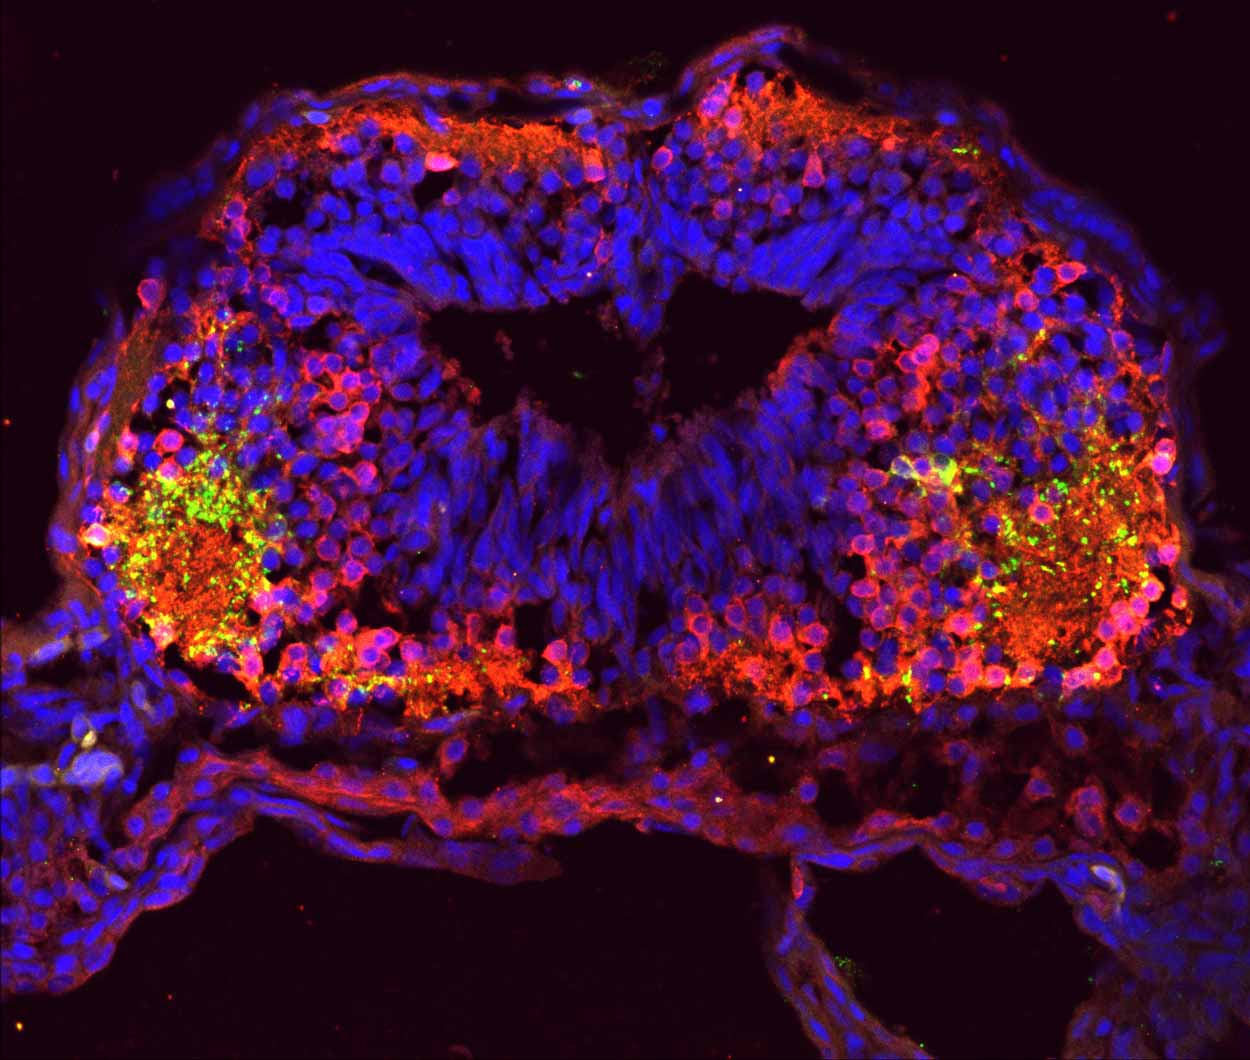 fluorescent image of tadpole brain cross-section